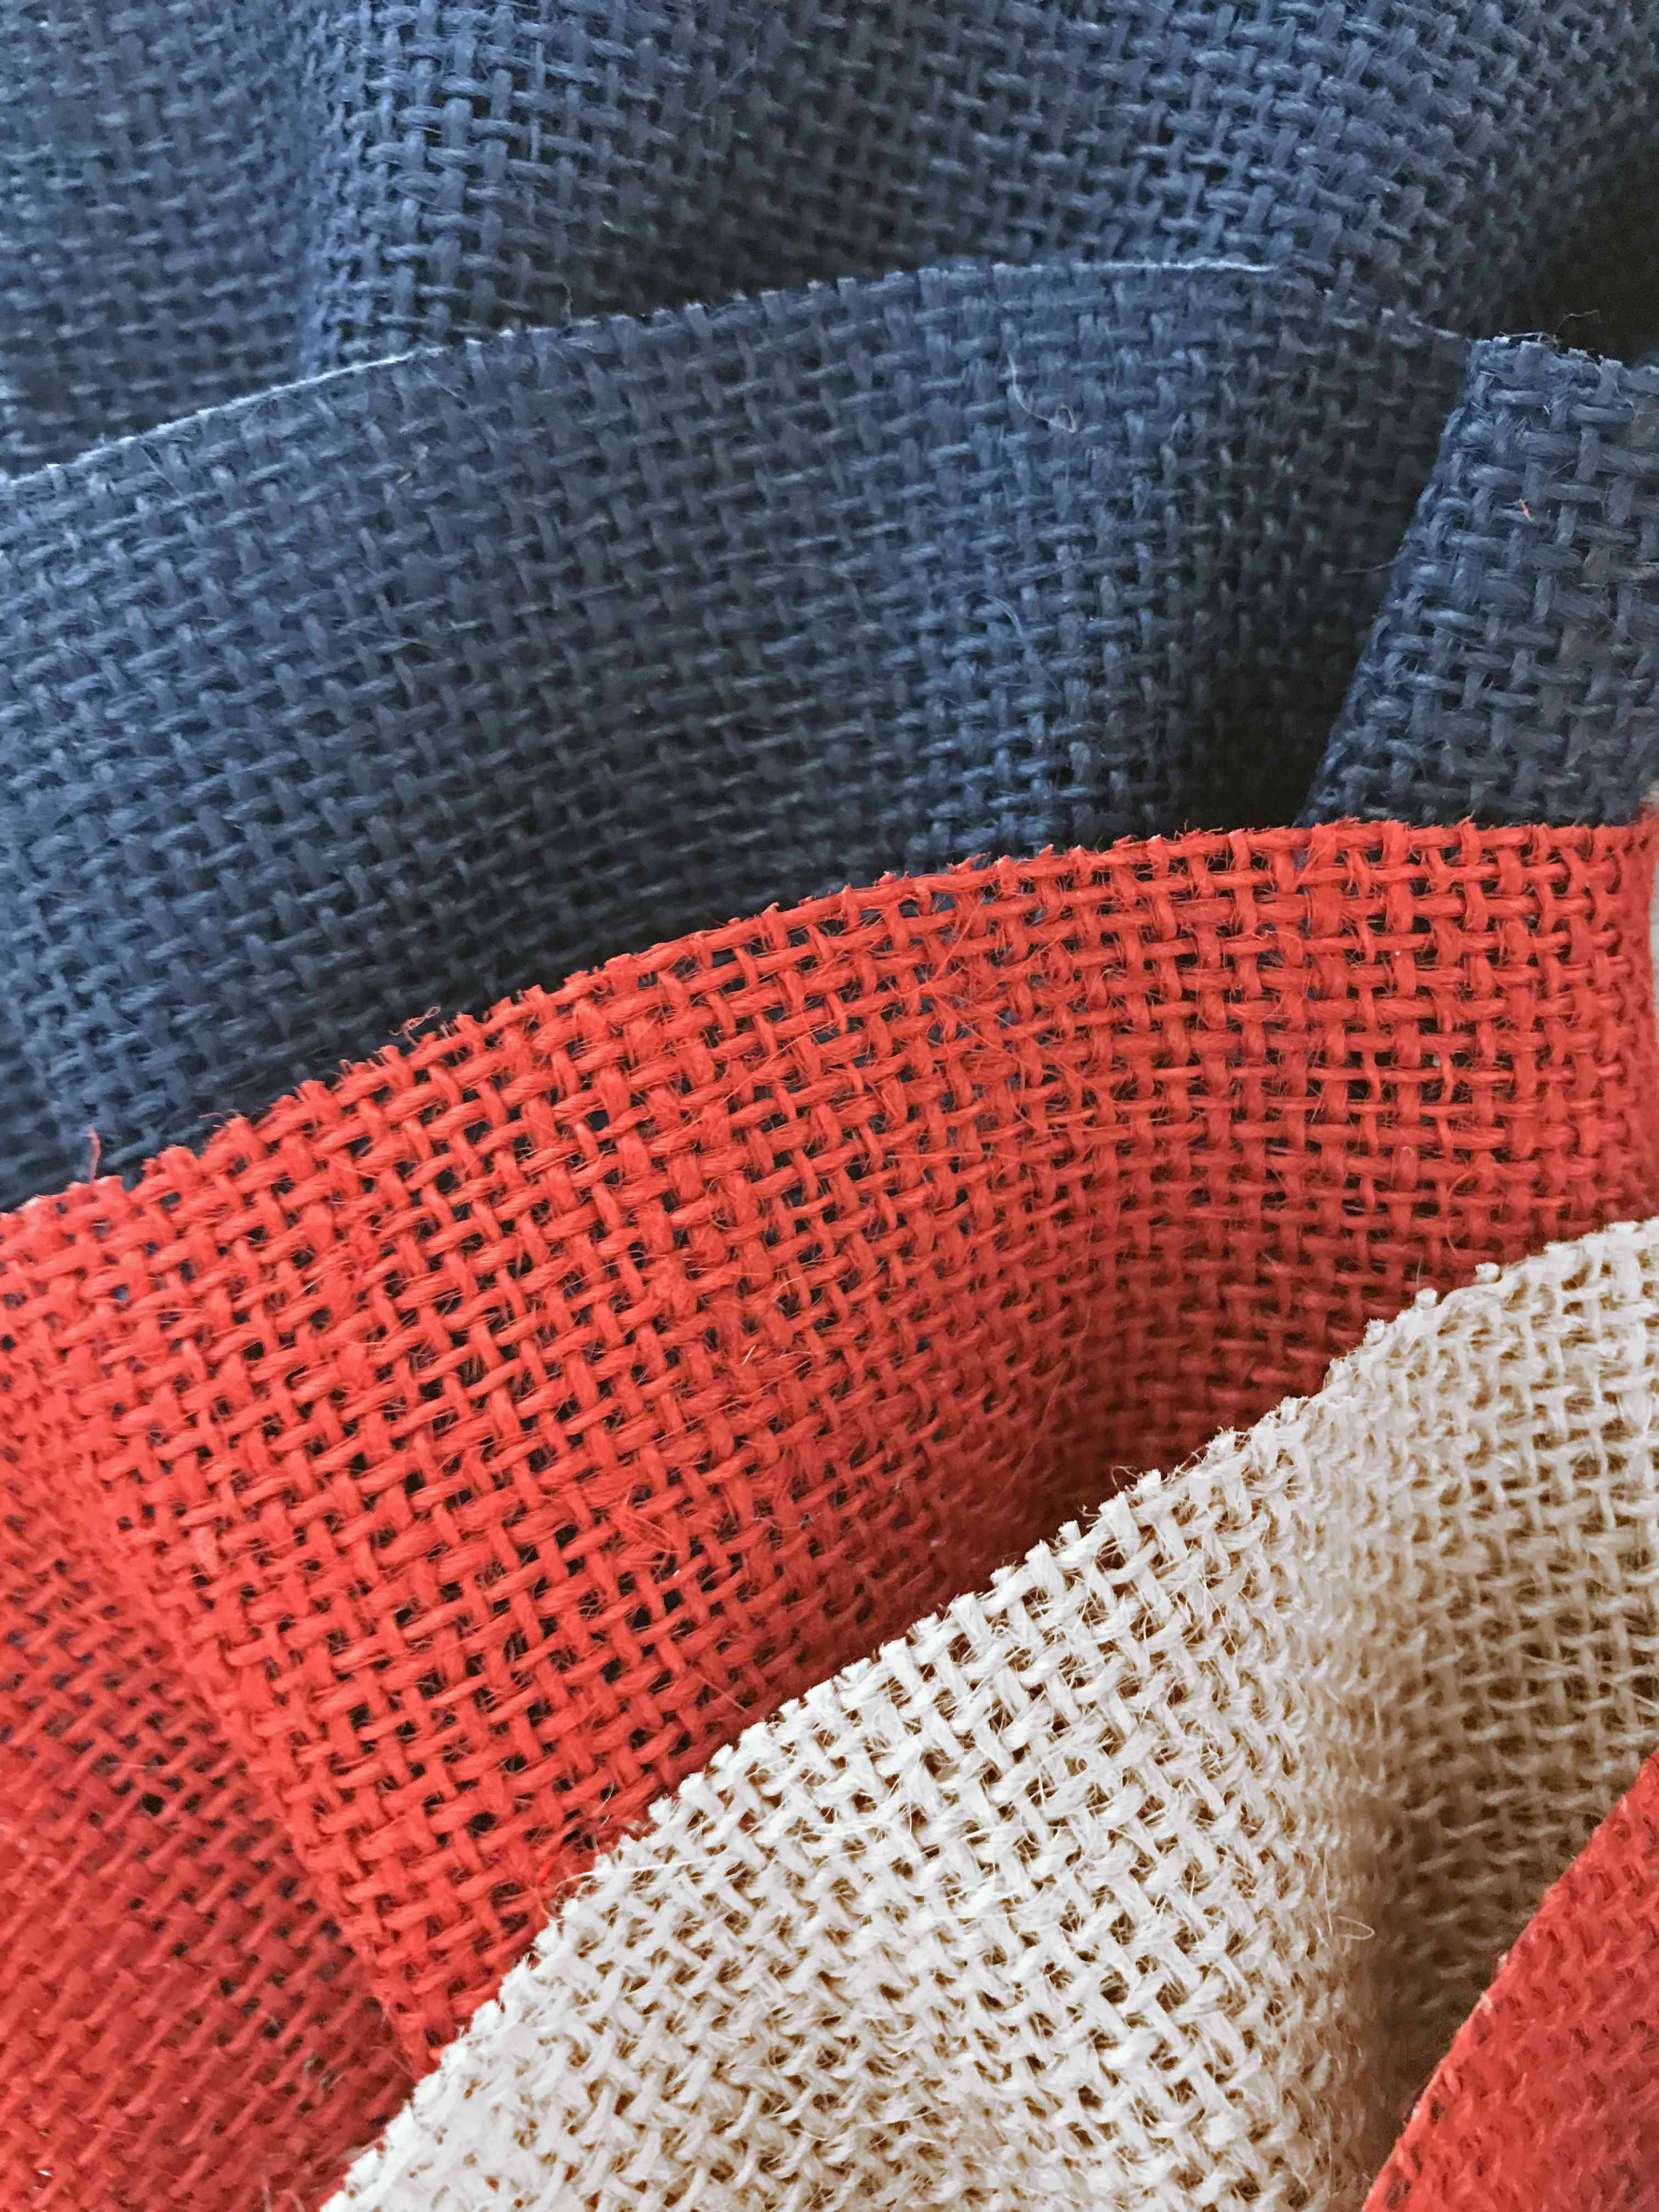 Red White and Blue colored jute ruffled fabric arts and craft material